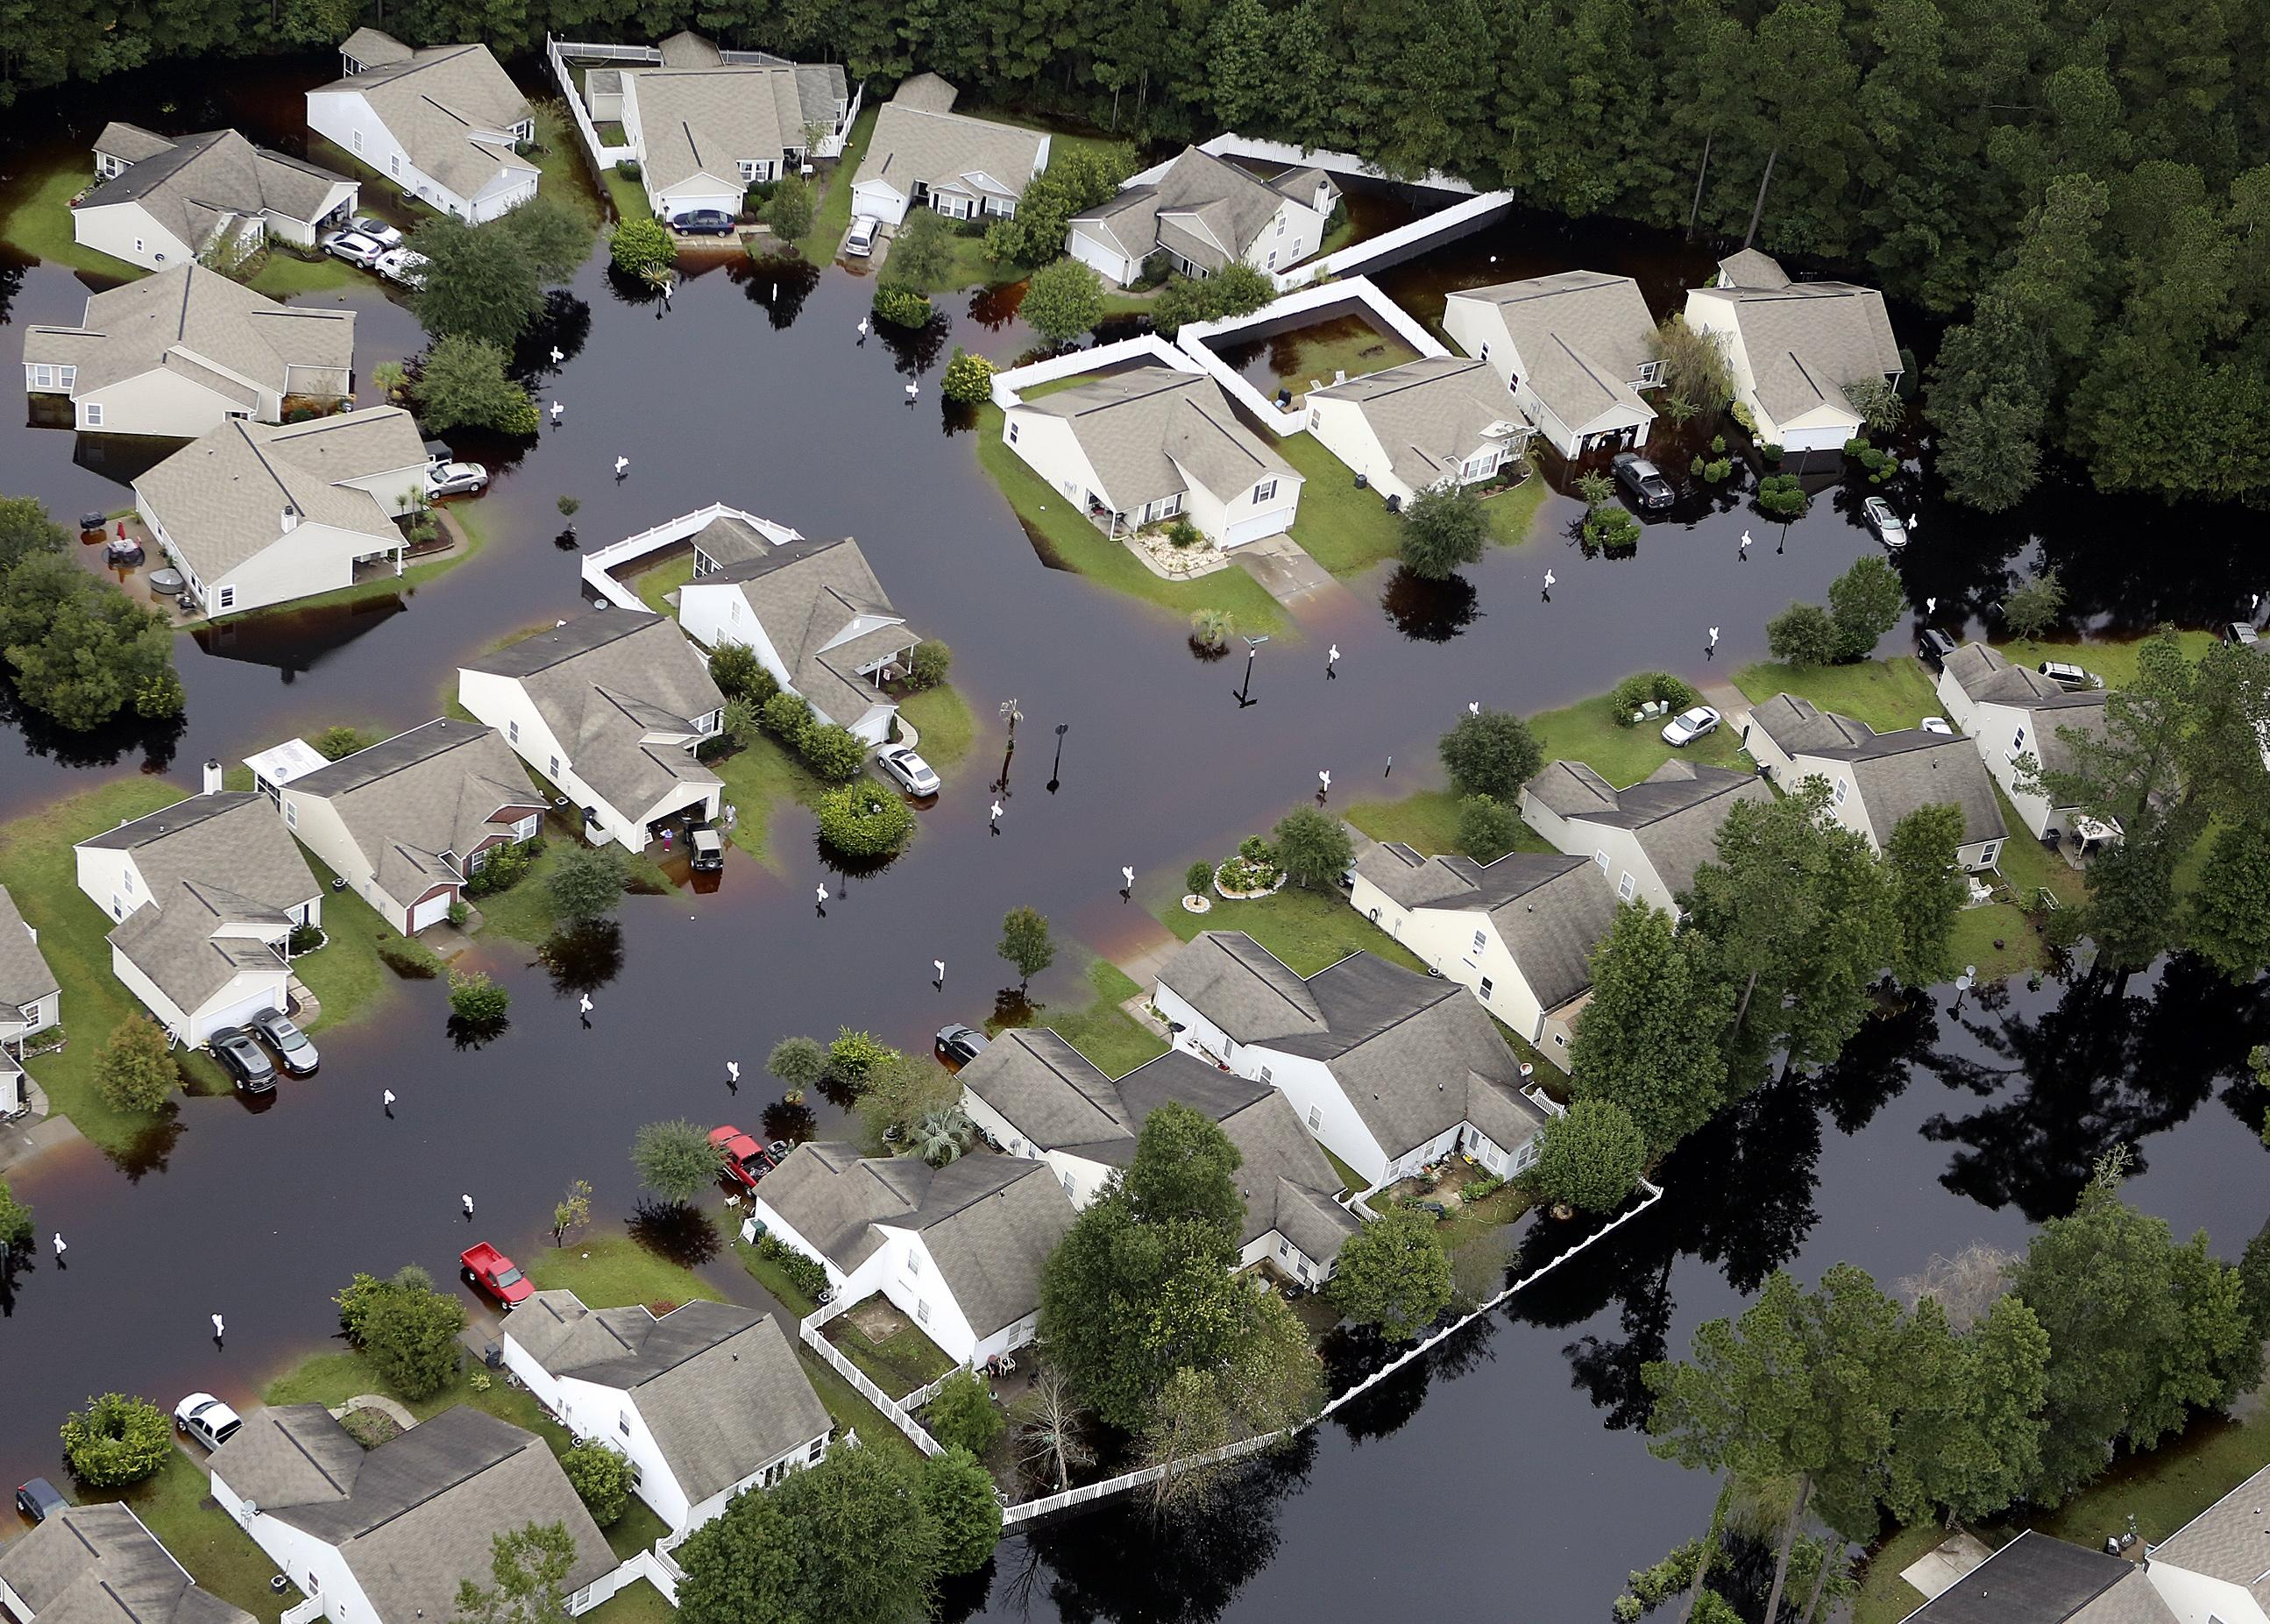 South Carolina cleans up, but worries remain amid floods